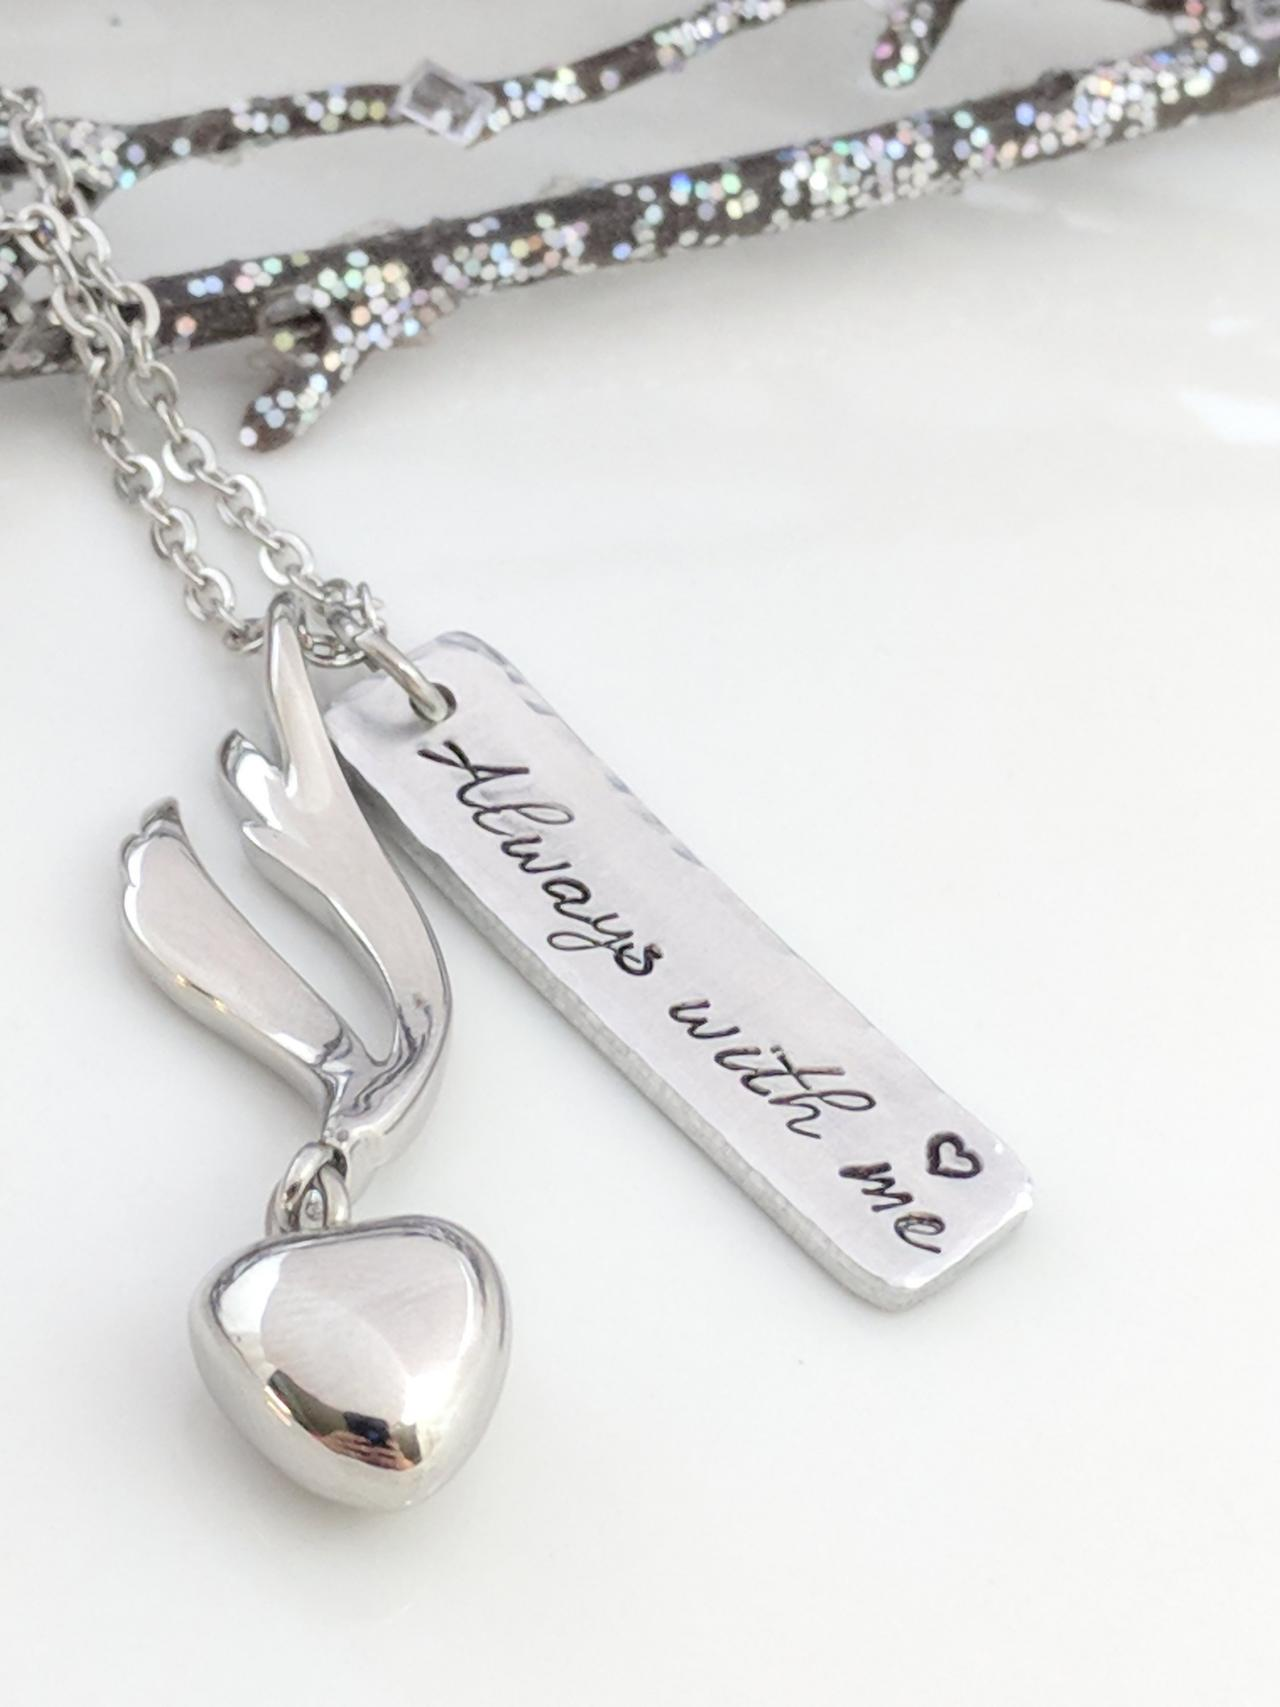 Hand Stamped Necklace Always With Me-Hand Stamped Jewelry-Memorial Urn-Ashes Locket-Heart Urn-Memorial Keepsake-Ashes Jewelry-Cremation Necklace-Urn Necklace-Loss of Mom-Urn for Ashes